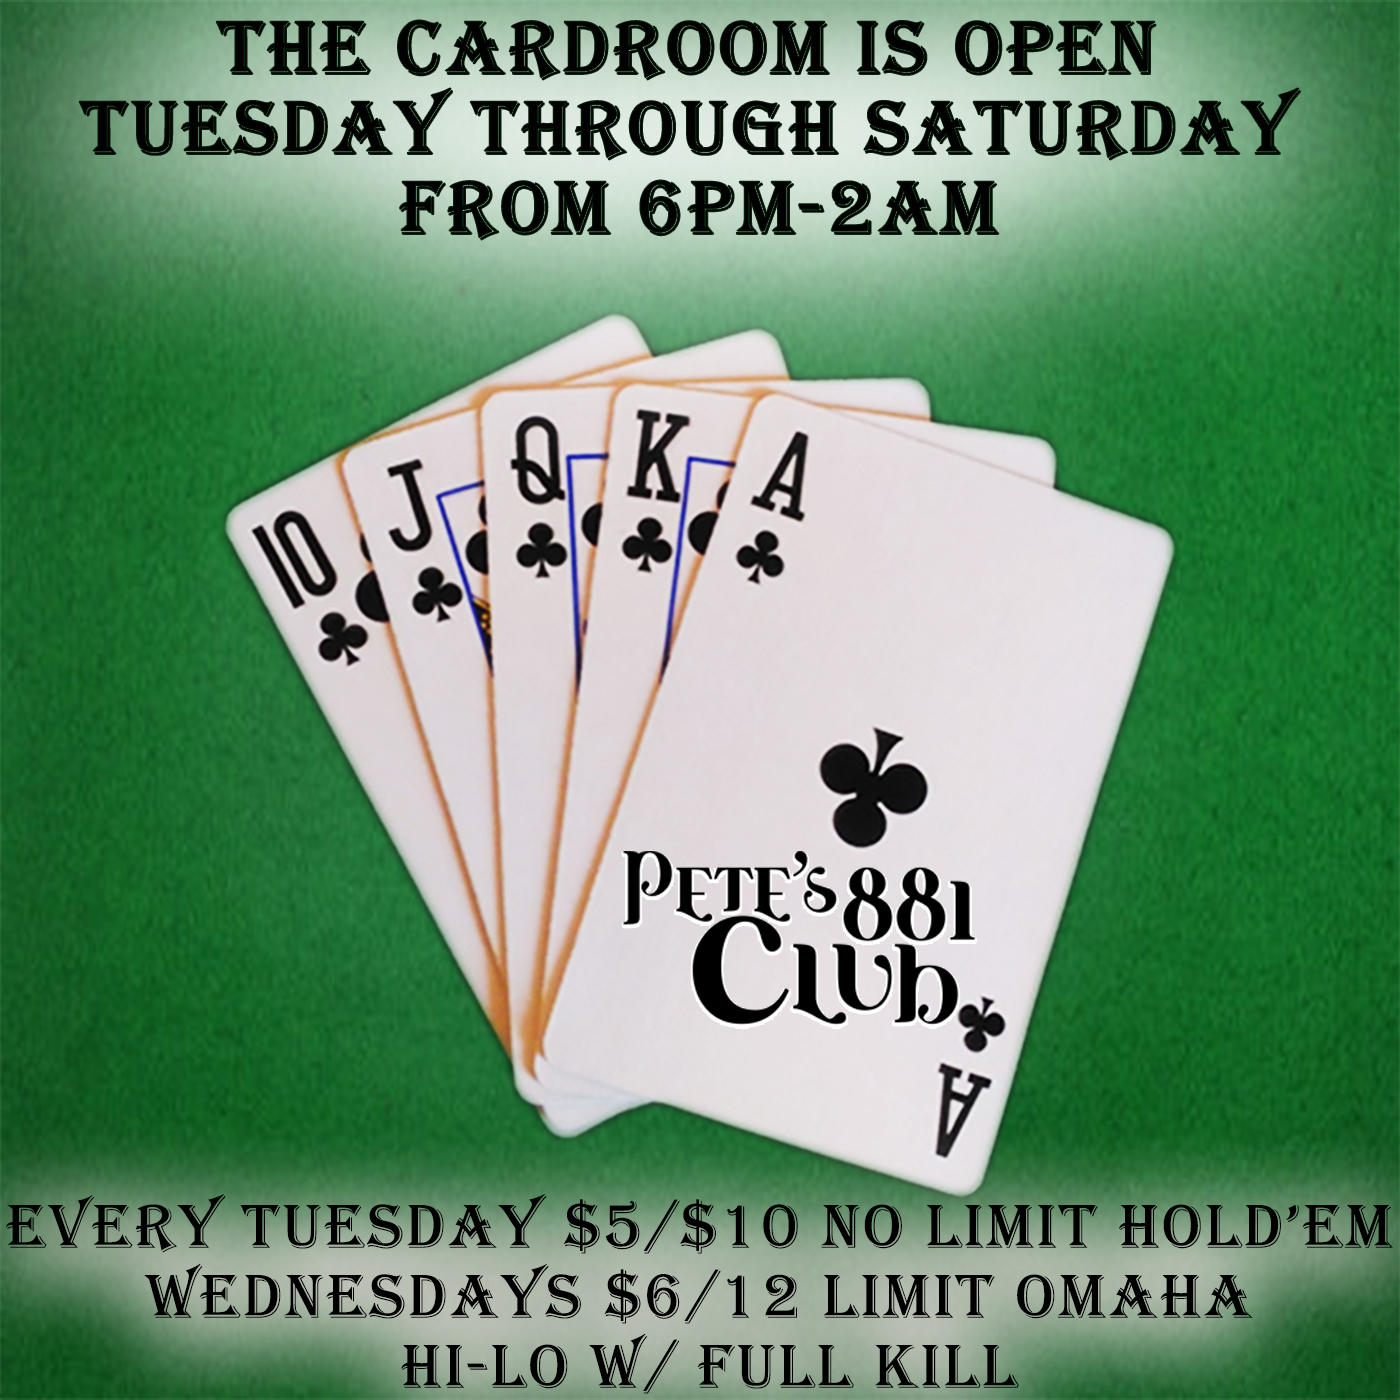 Cardroom Hours